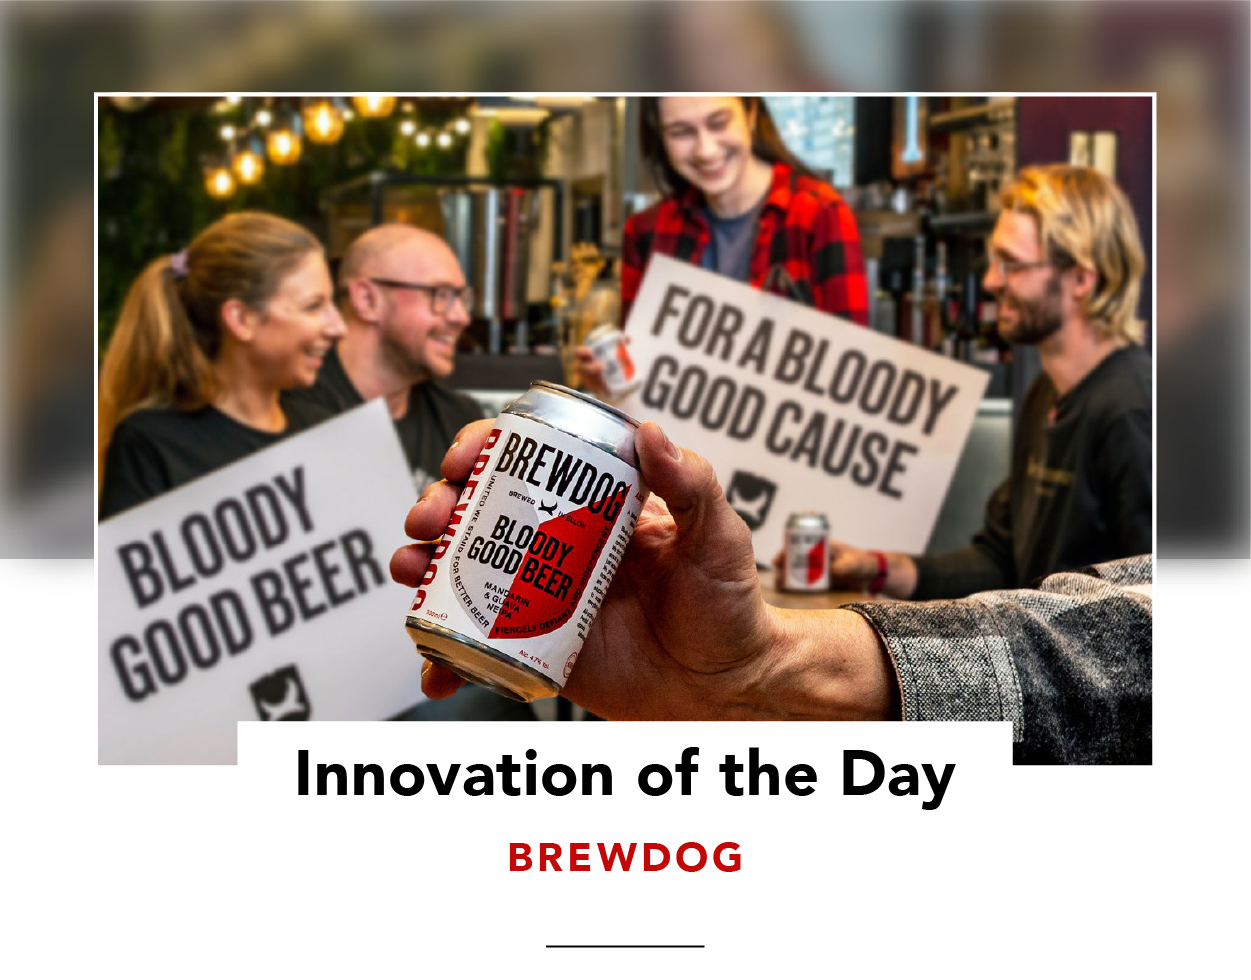 BrewDog's Bloody Good Beer: can and people with 'For a Bloody Good Cause' signs